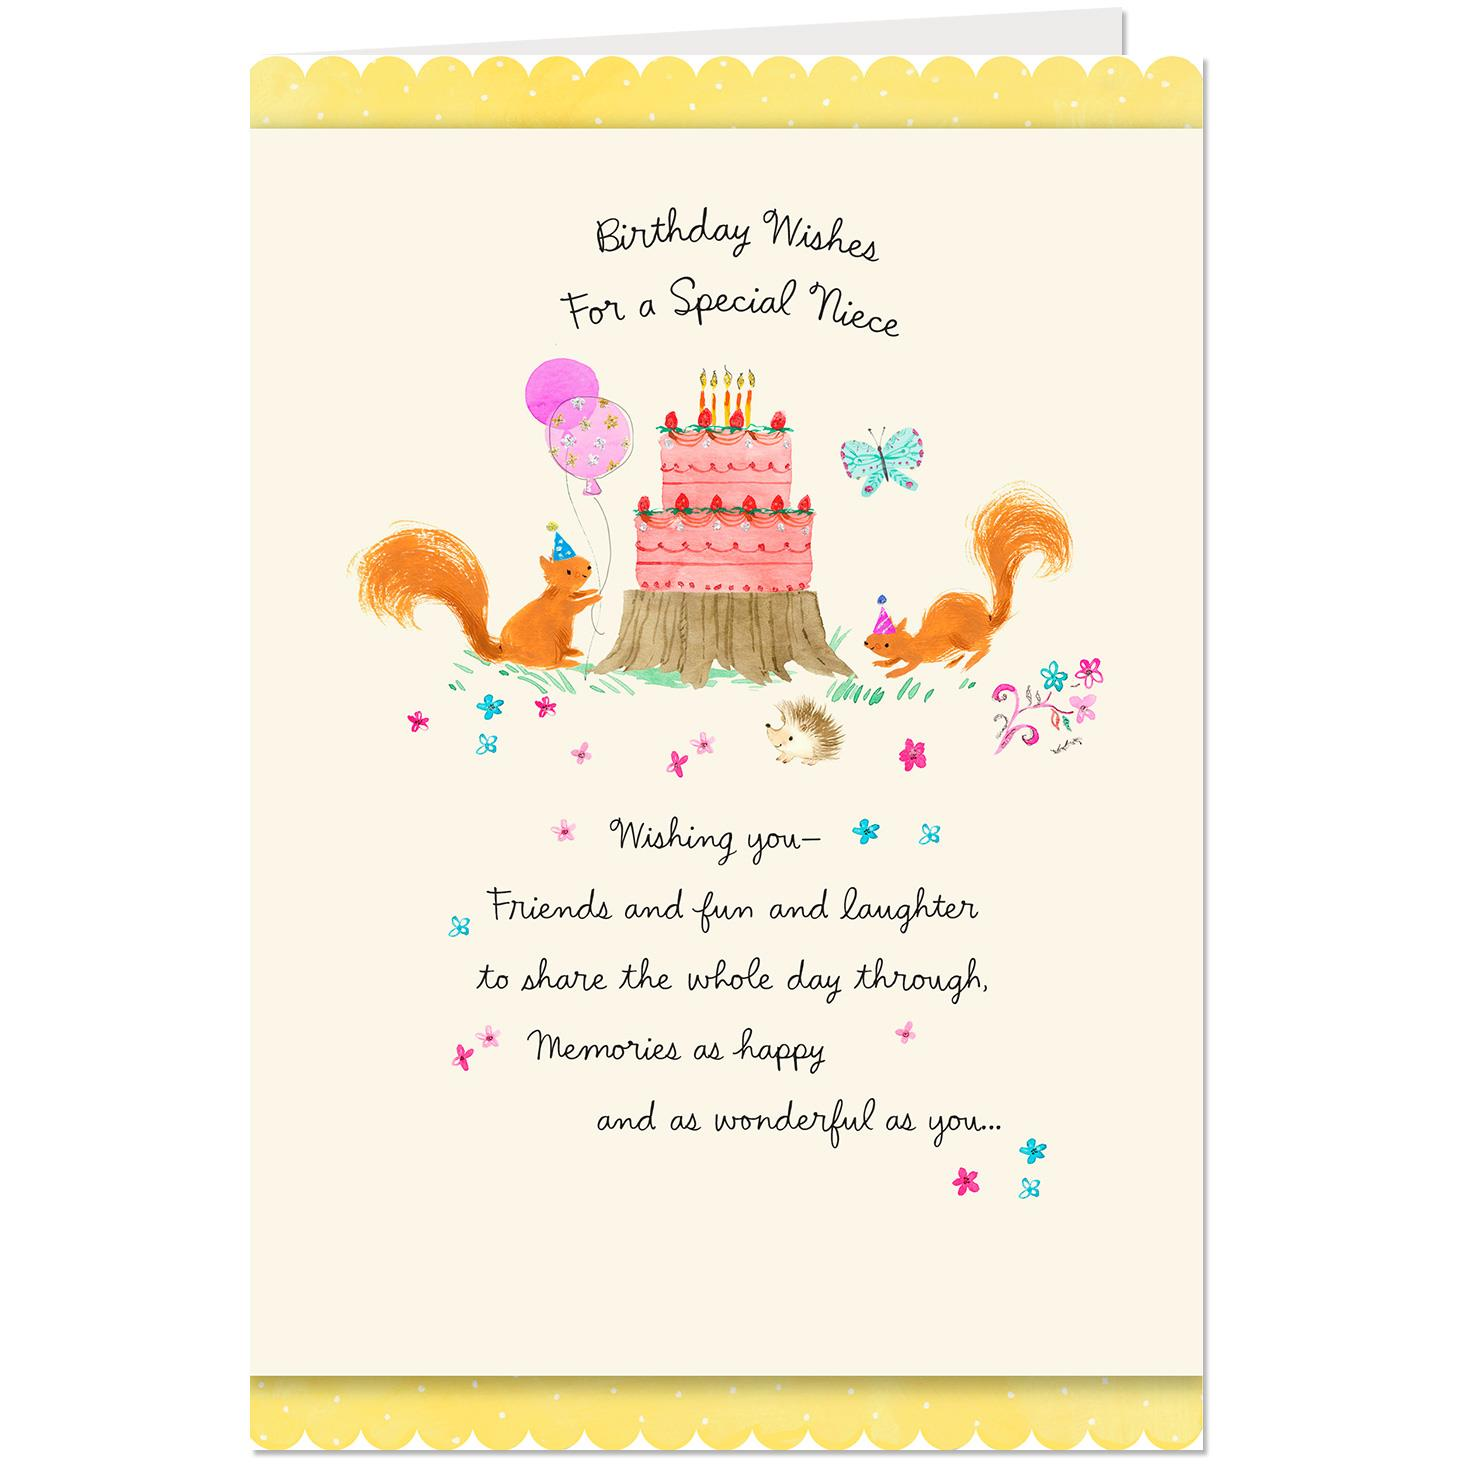 Wishing You Memories As Wonderful Birthday Card For Niece